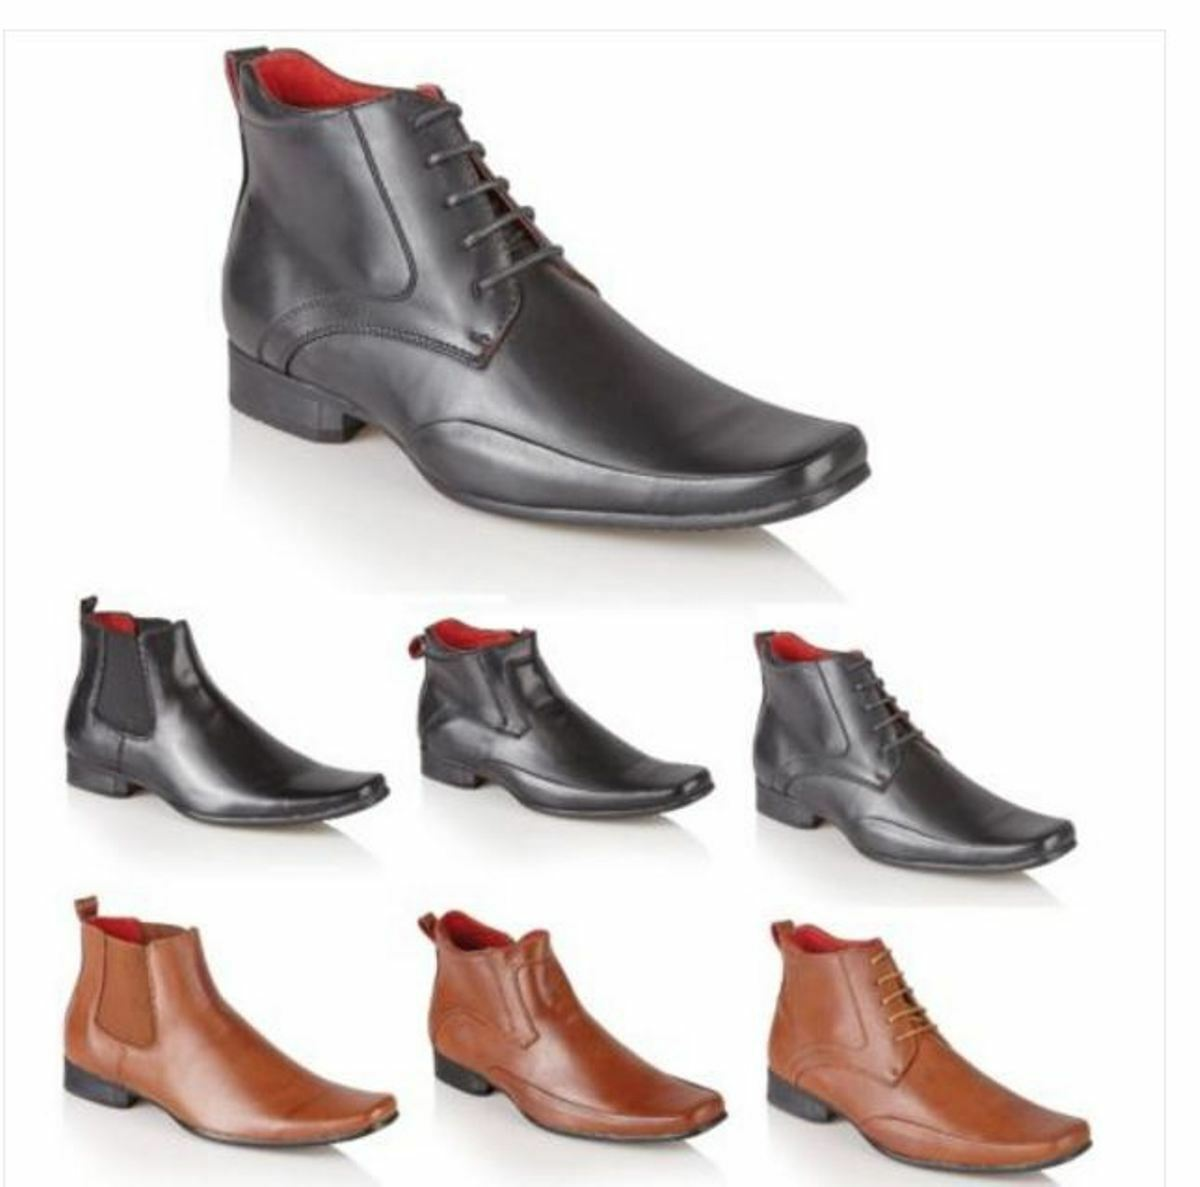 Men's Italian Style Leather Formal Casual Chelsea Ankle Boots Boys shoes